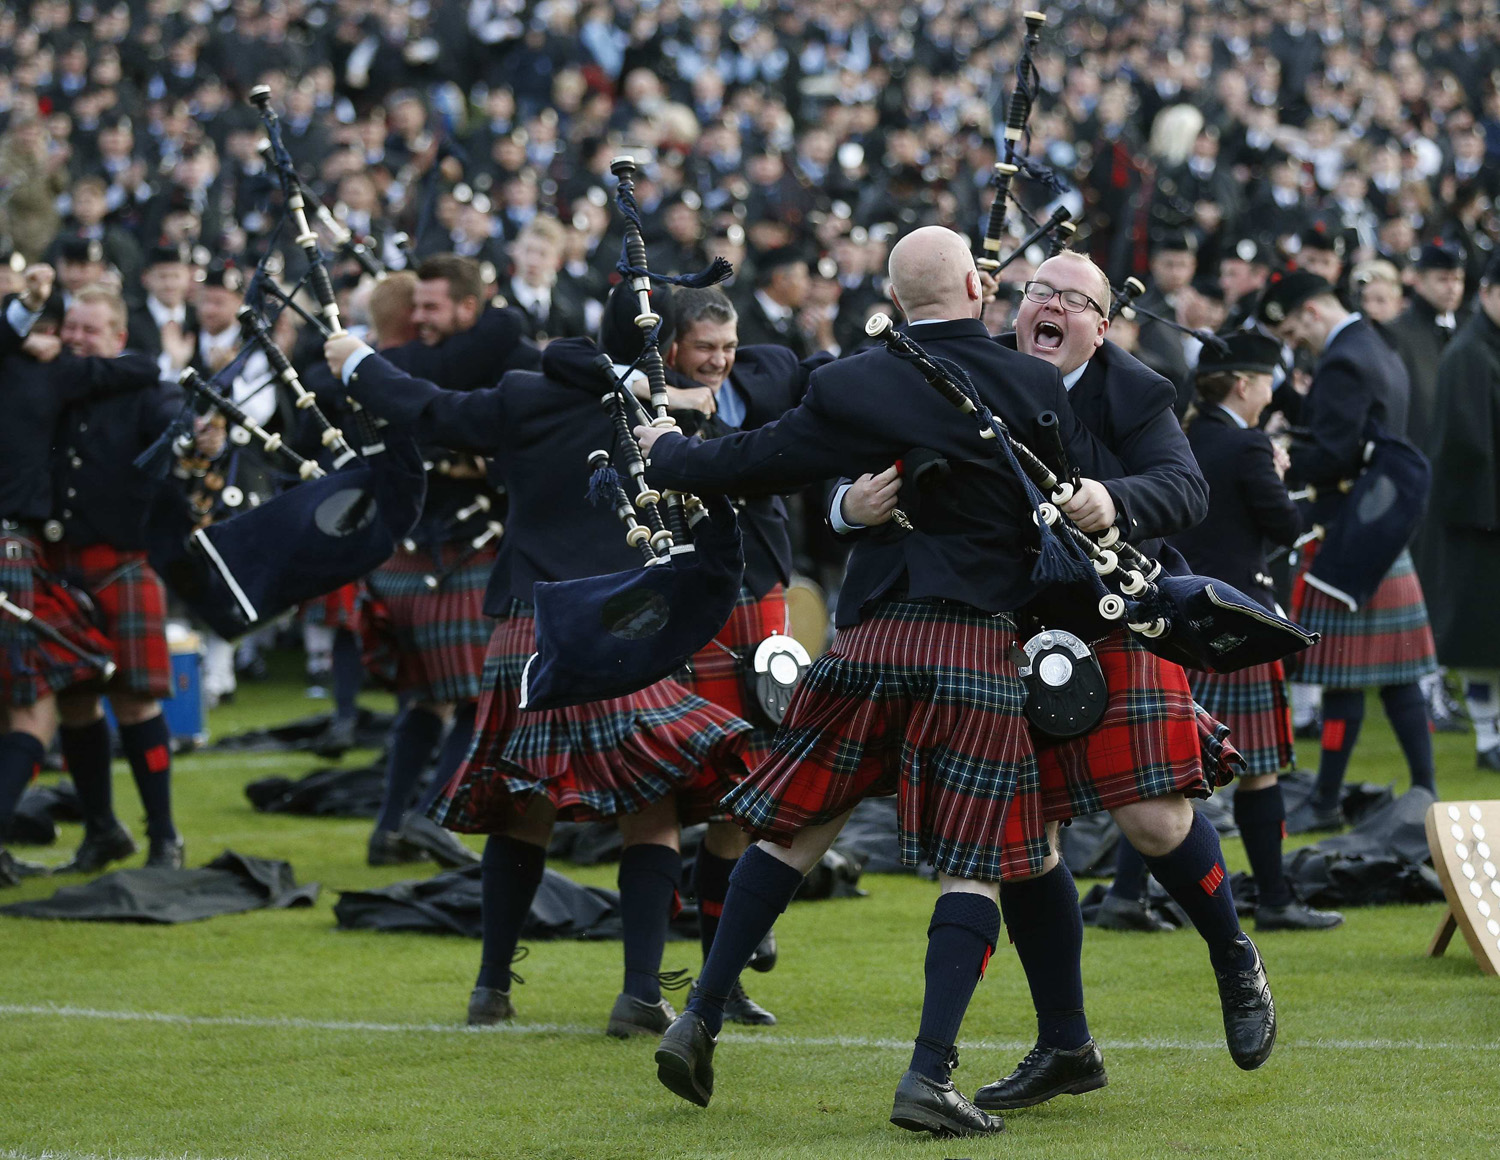 Members of the Field Marshall Montgomery Pipe Band react to winning the annual World Pipe Band Championships at Glasgow Green, Scotland on Aug. 16, 2014.